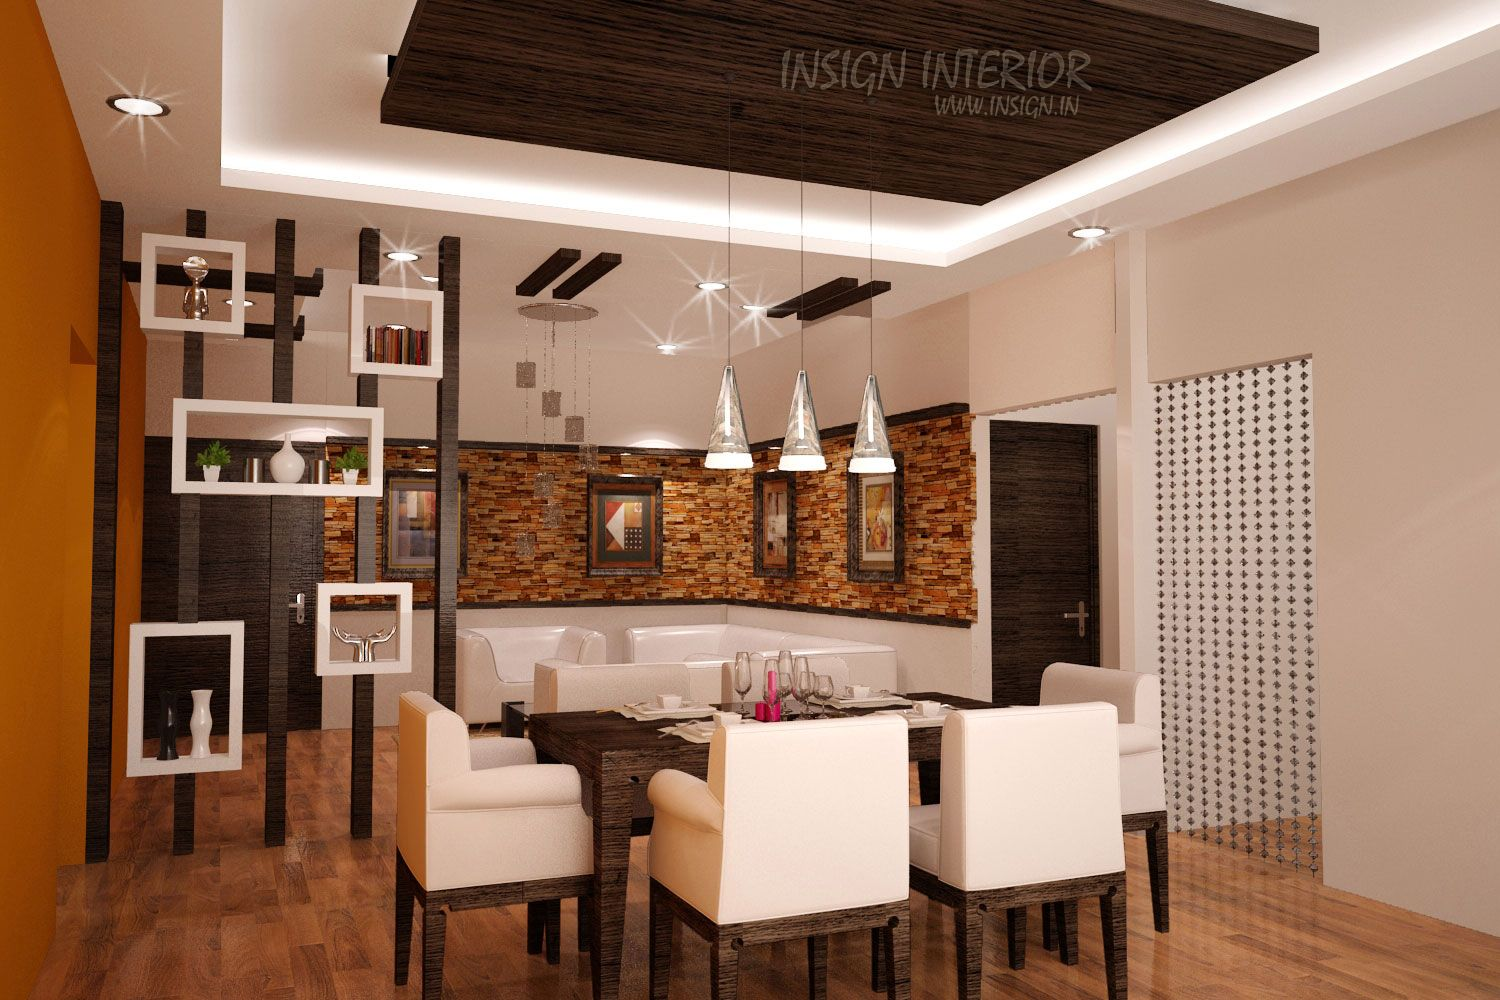 Top 10 Interior Decorators In Chennai With Images Interior Design Companies Interior Interior Decorating